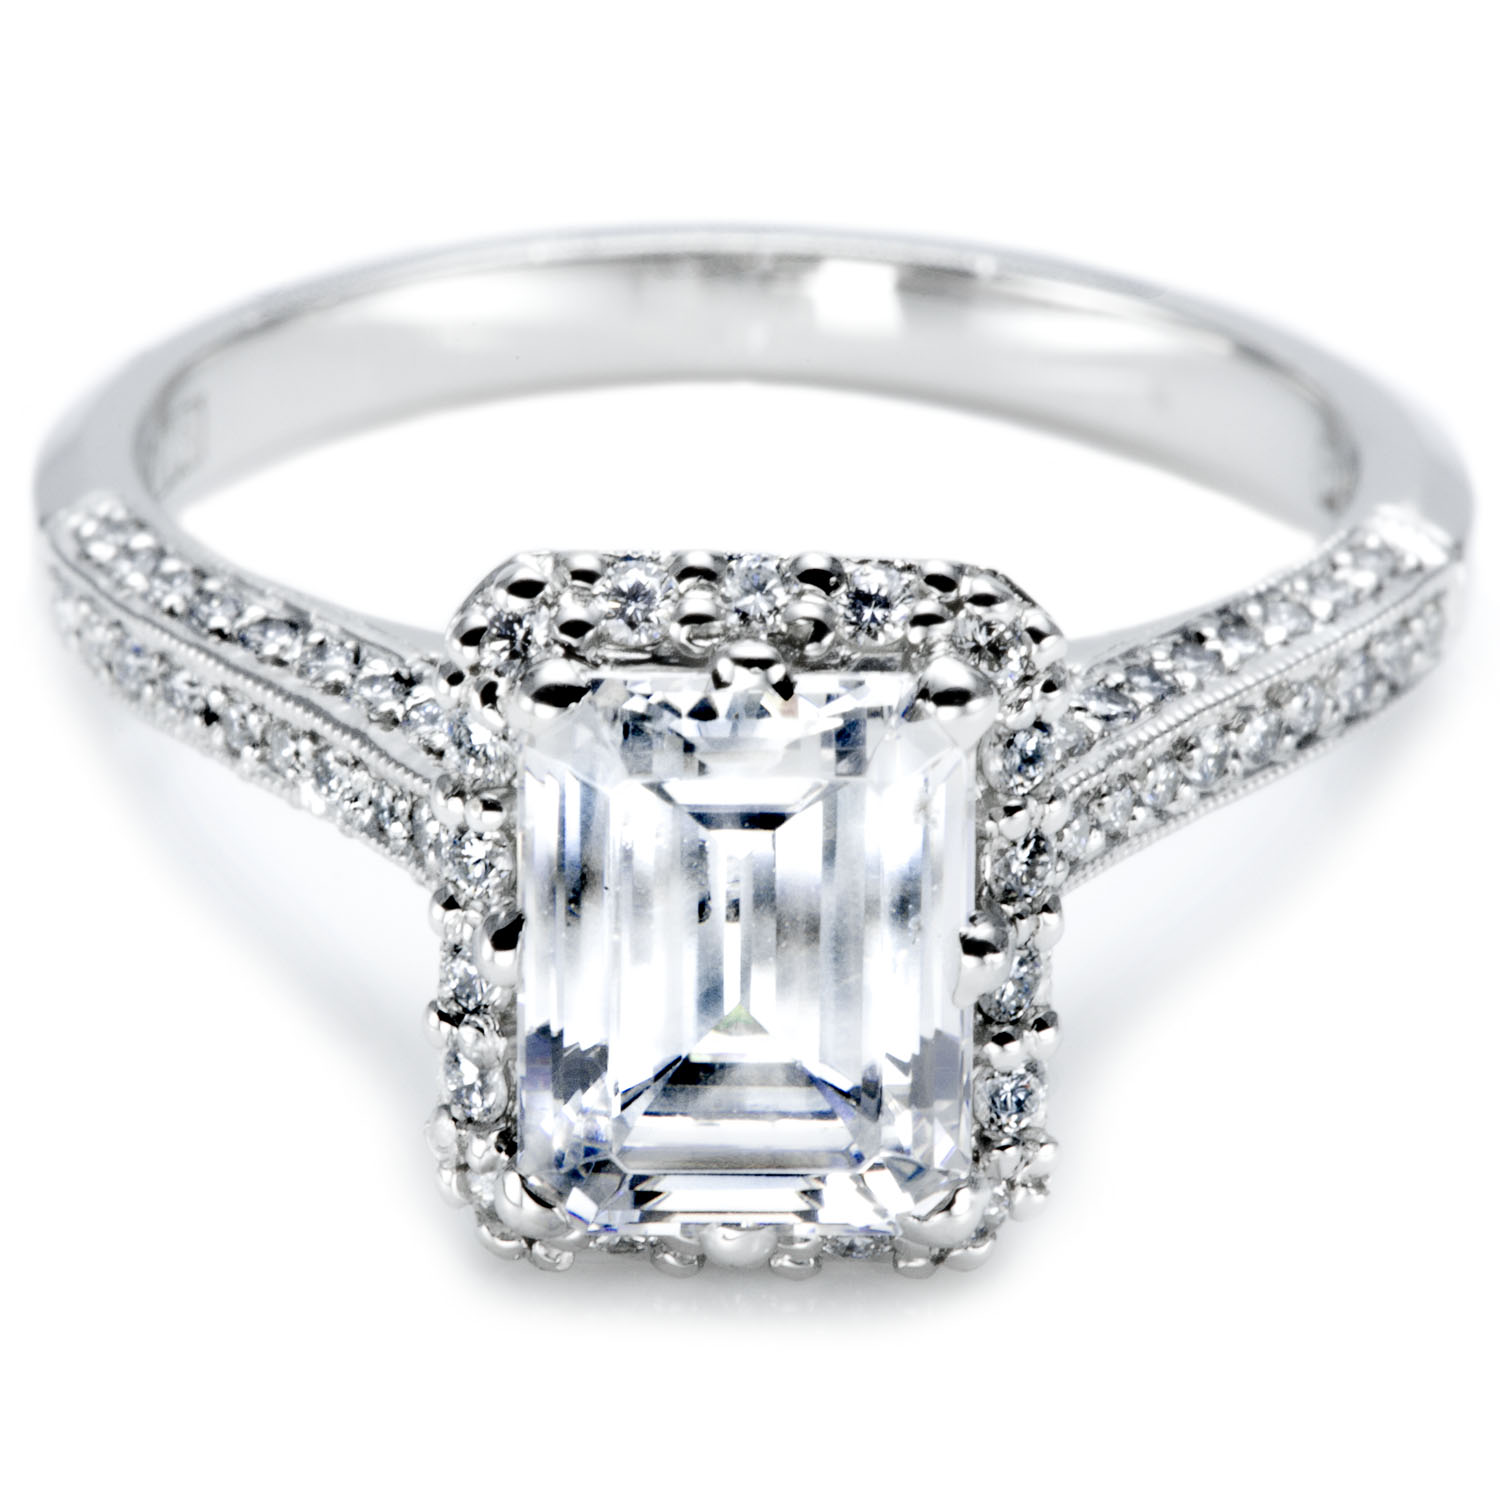 gorgeous tacori emerald engagement rings have your dream wedding. Black Bedroom Furniture Sets. Home Design Ideas